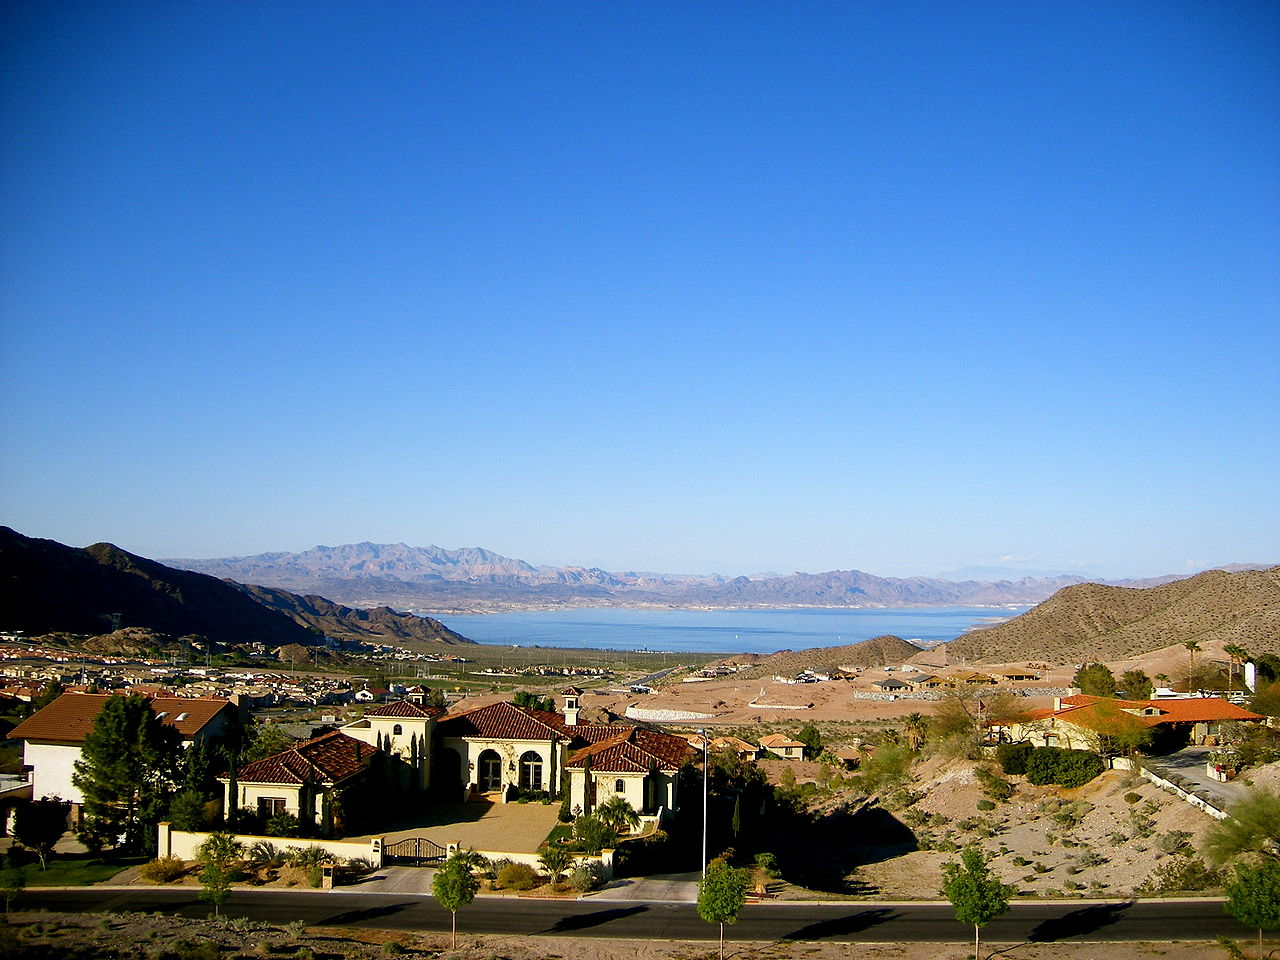 Lake Link Wi >> File:Boulder City, View of Lake Mead.jpg - Wikimedia Commons